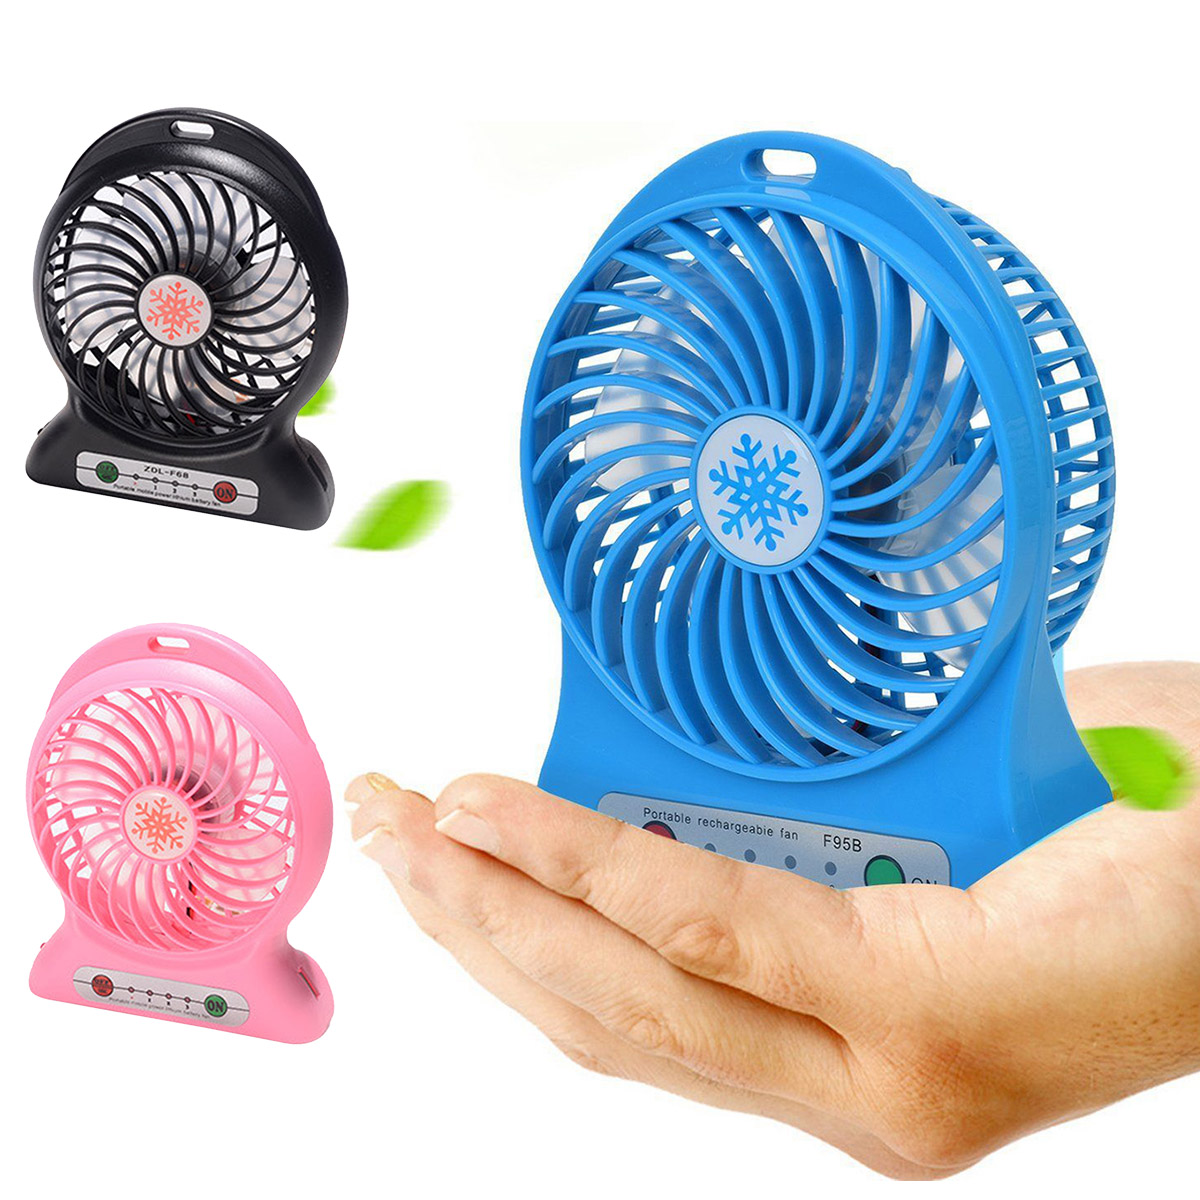 Baluue USB Mini Fan Creative Portable Rechargeable Personal Fan Foldable Double Leaf Fan Blue